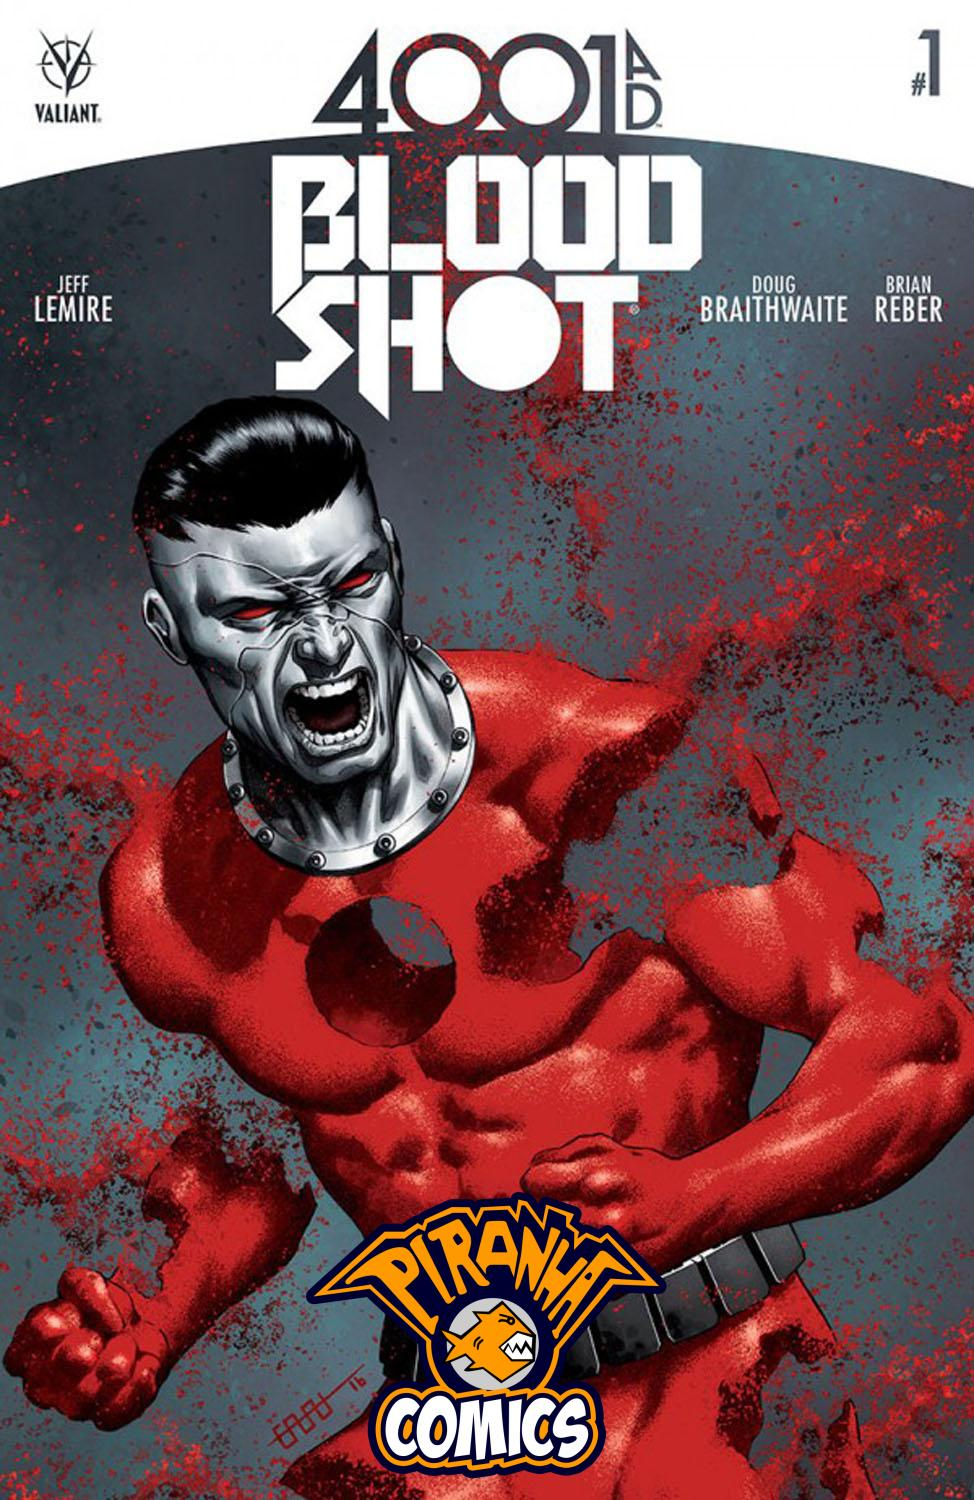 4001 A.D: BLOODSHOT #1 COVER C (2016) VF/NM VALIANT